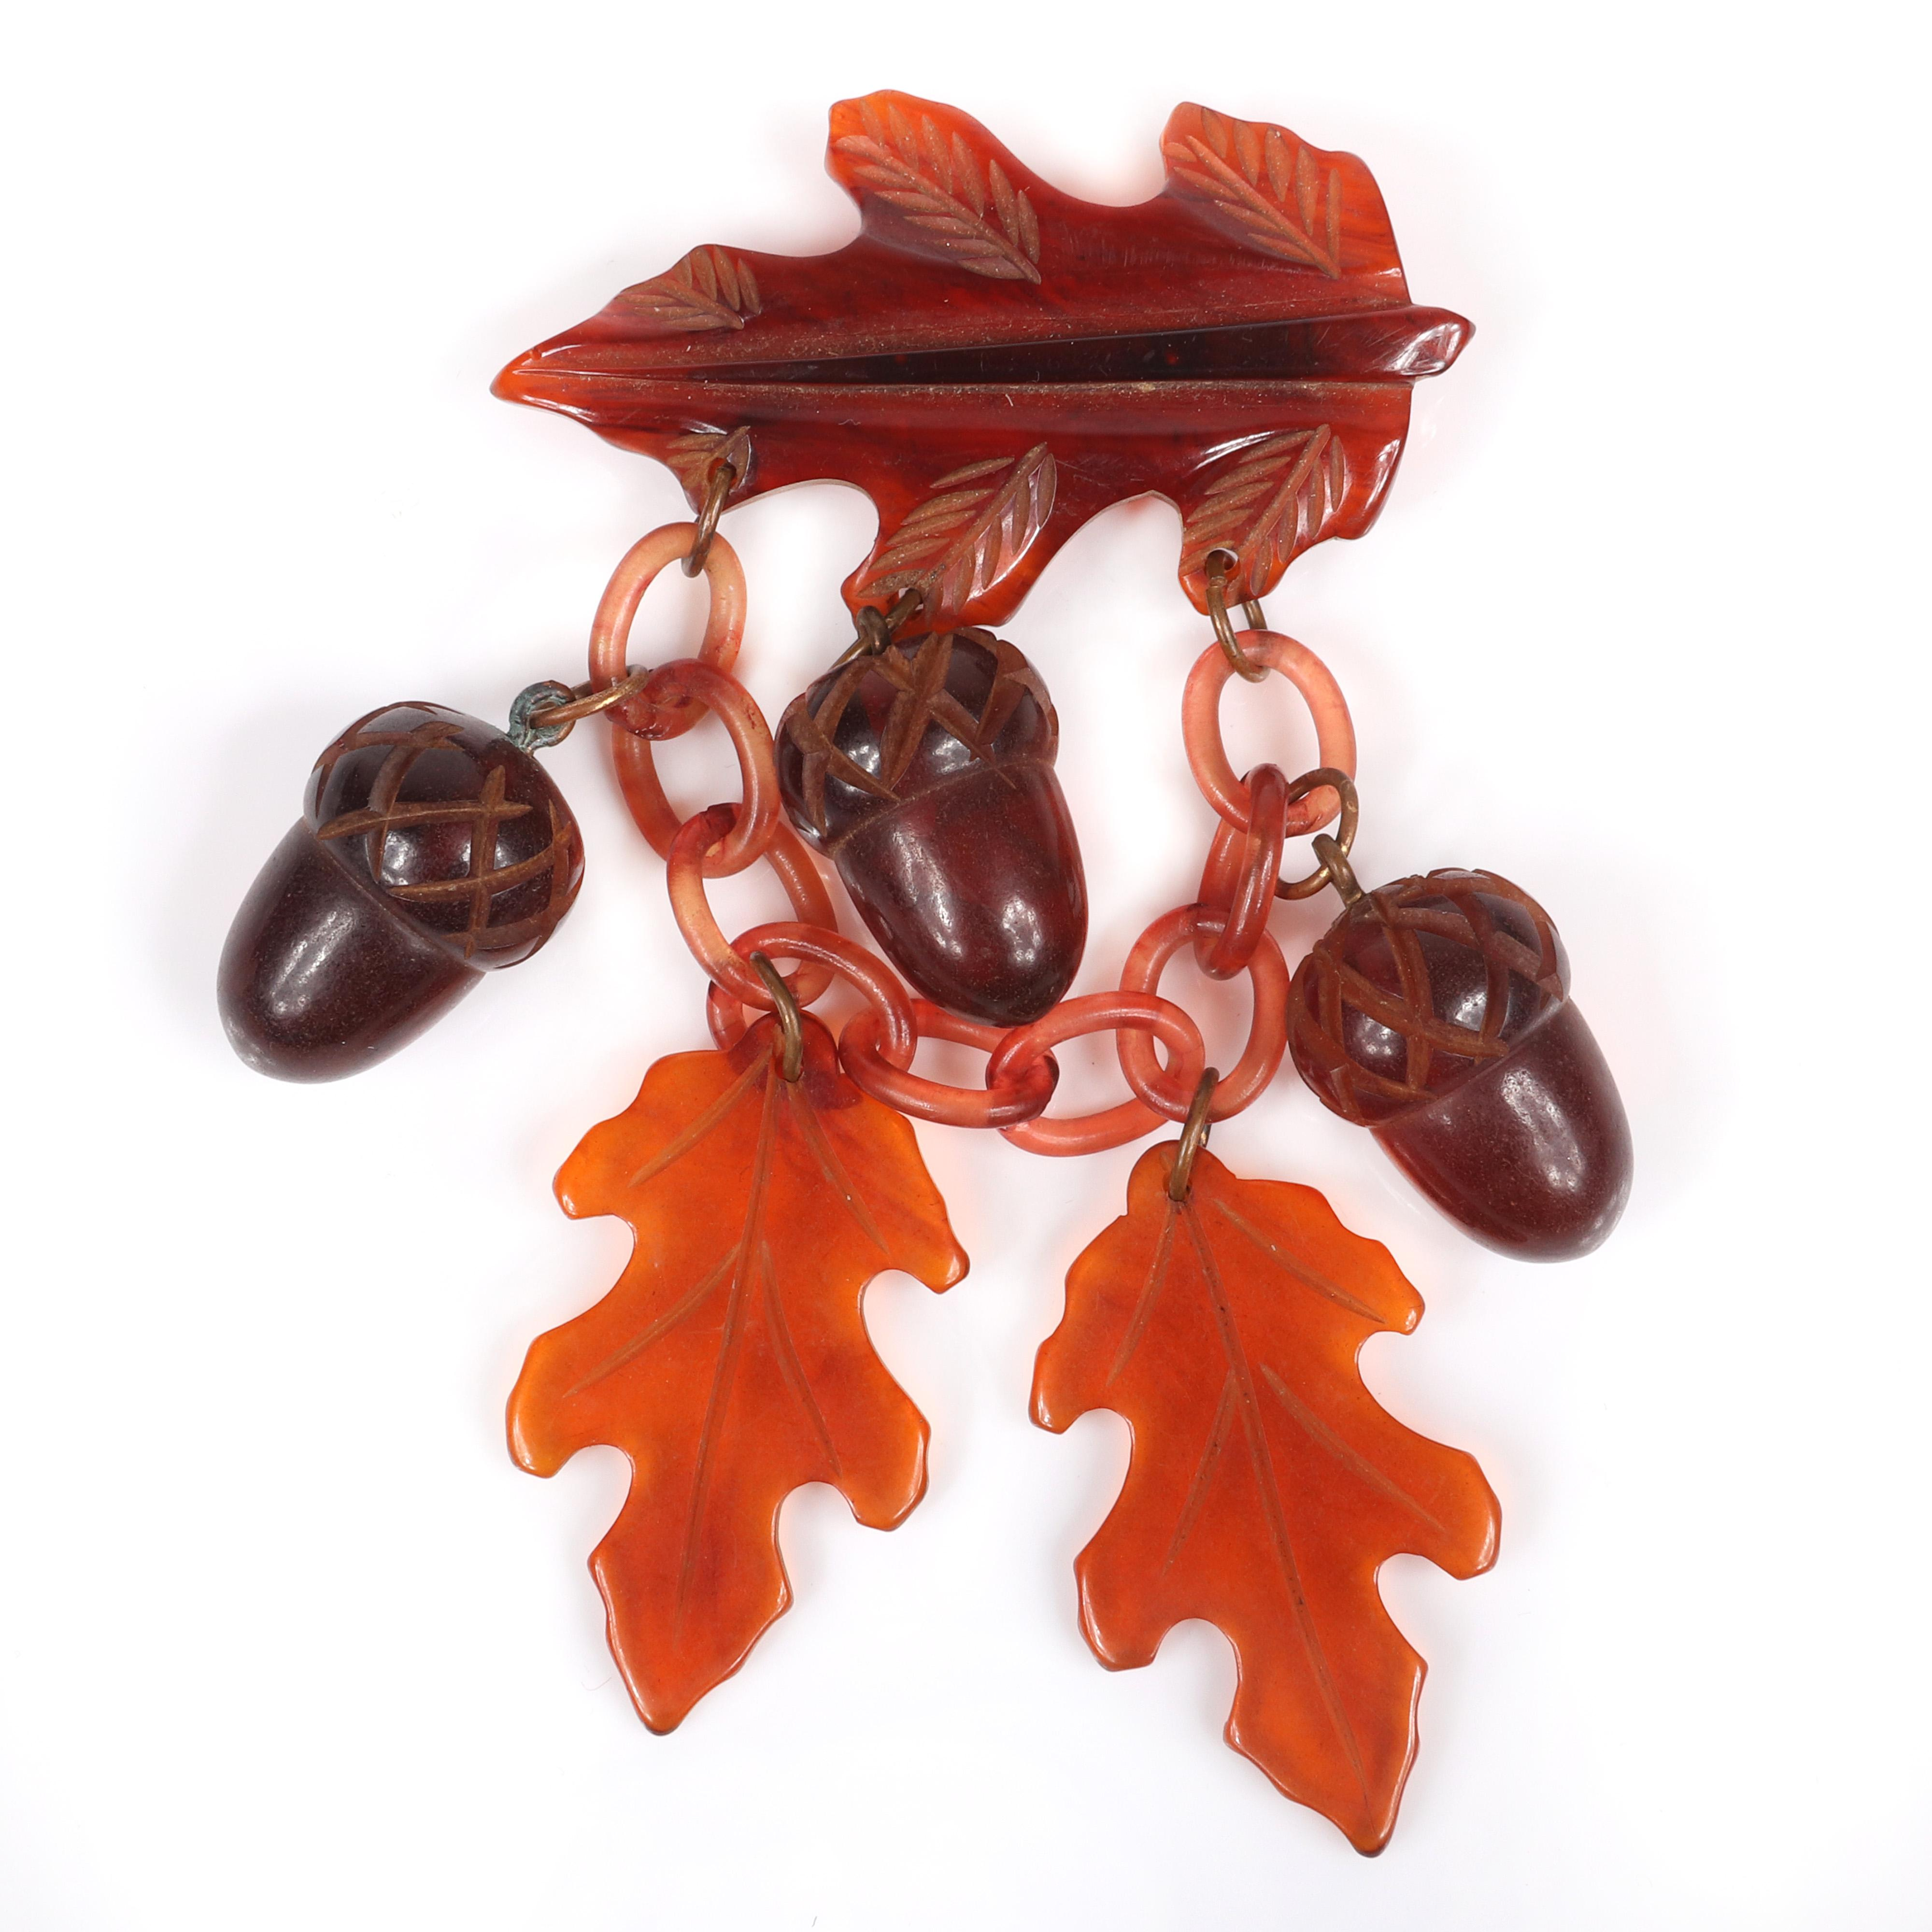 "Bakelite vintage carved Autumn oak leaf pin with amber celluloid chain and carved apple juice oak leaf and coffee bean acorn charms. 4 1/4""H x 2 1/4""W"